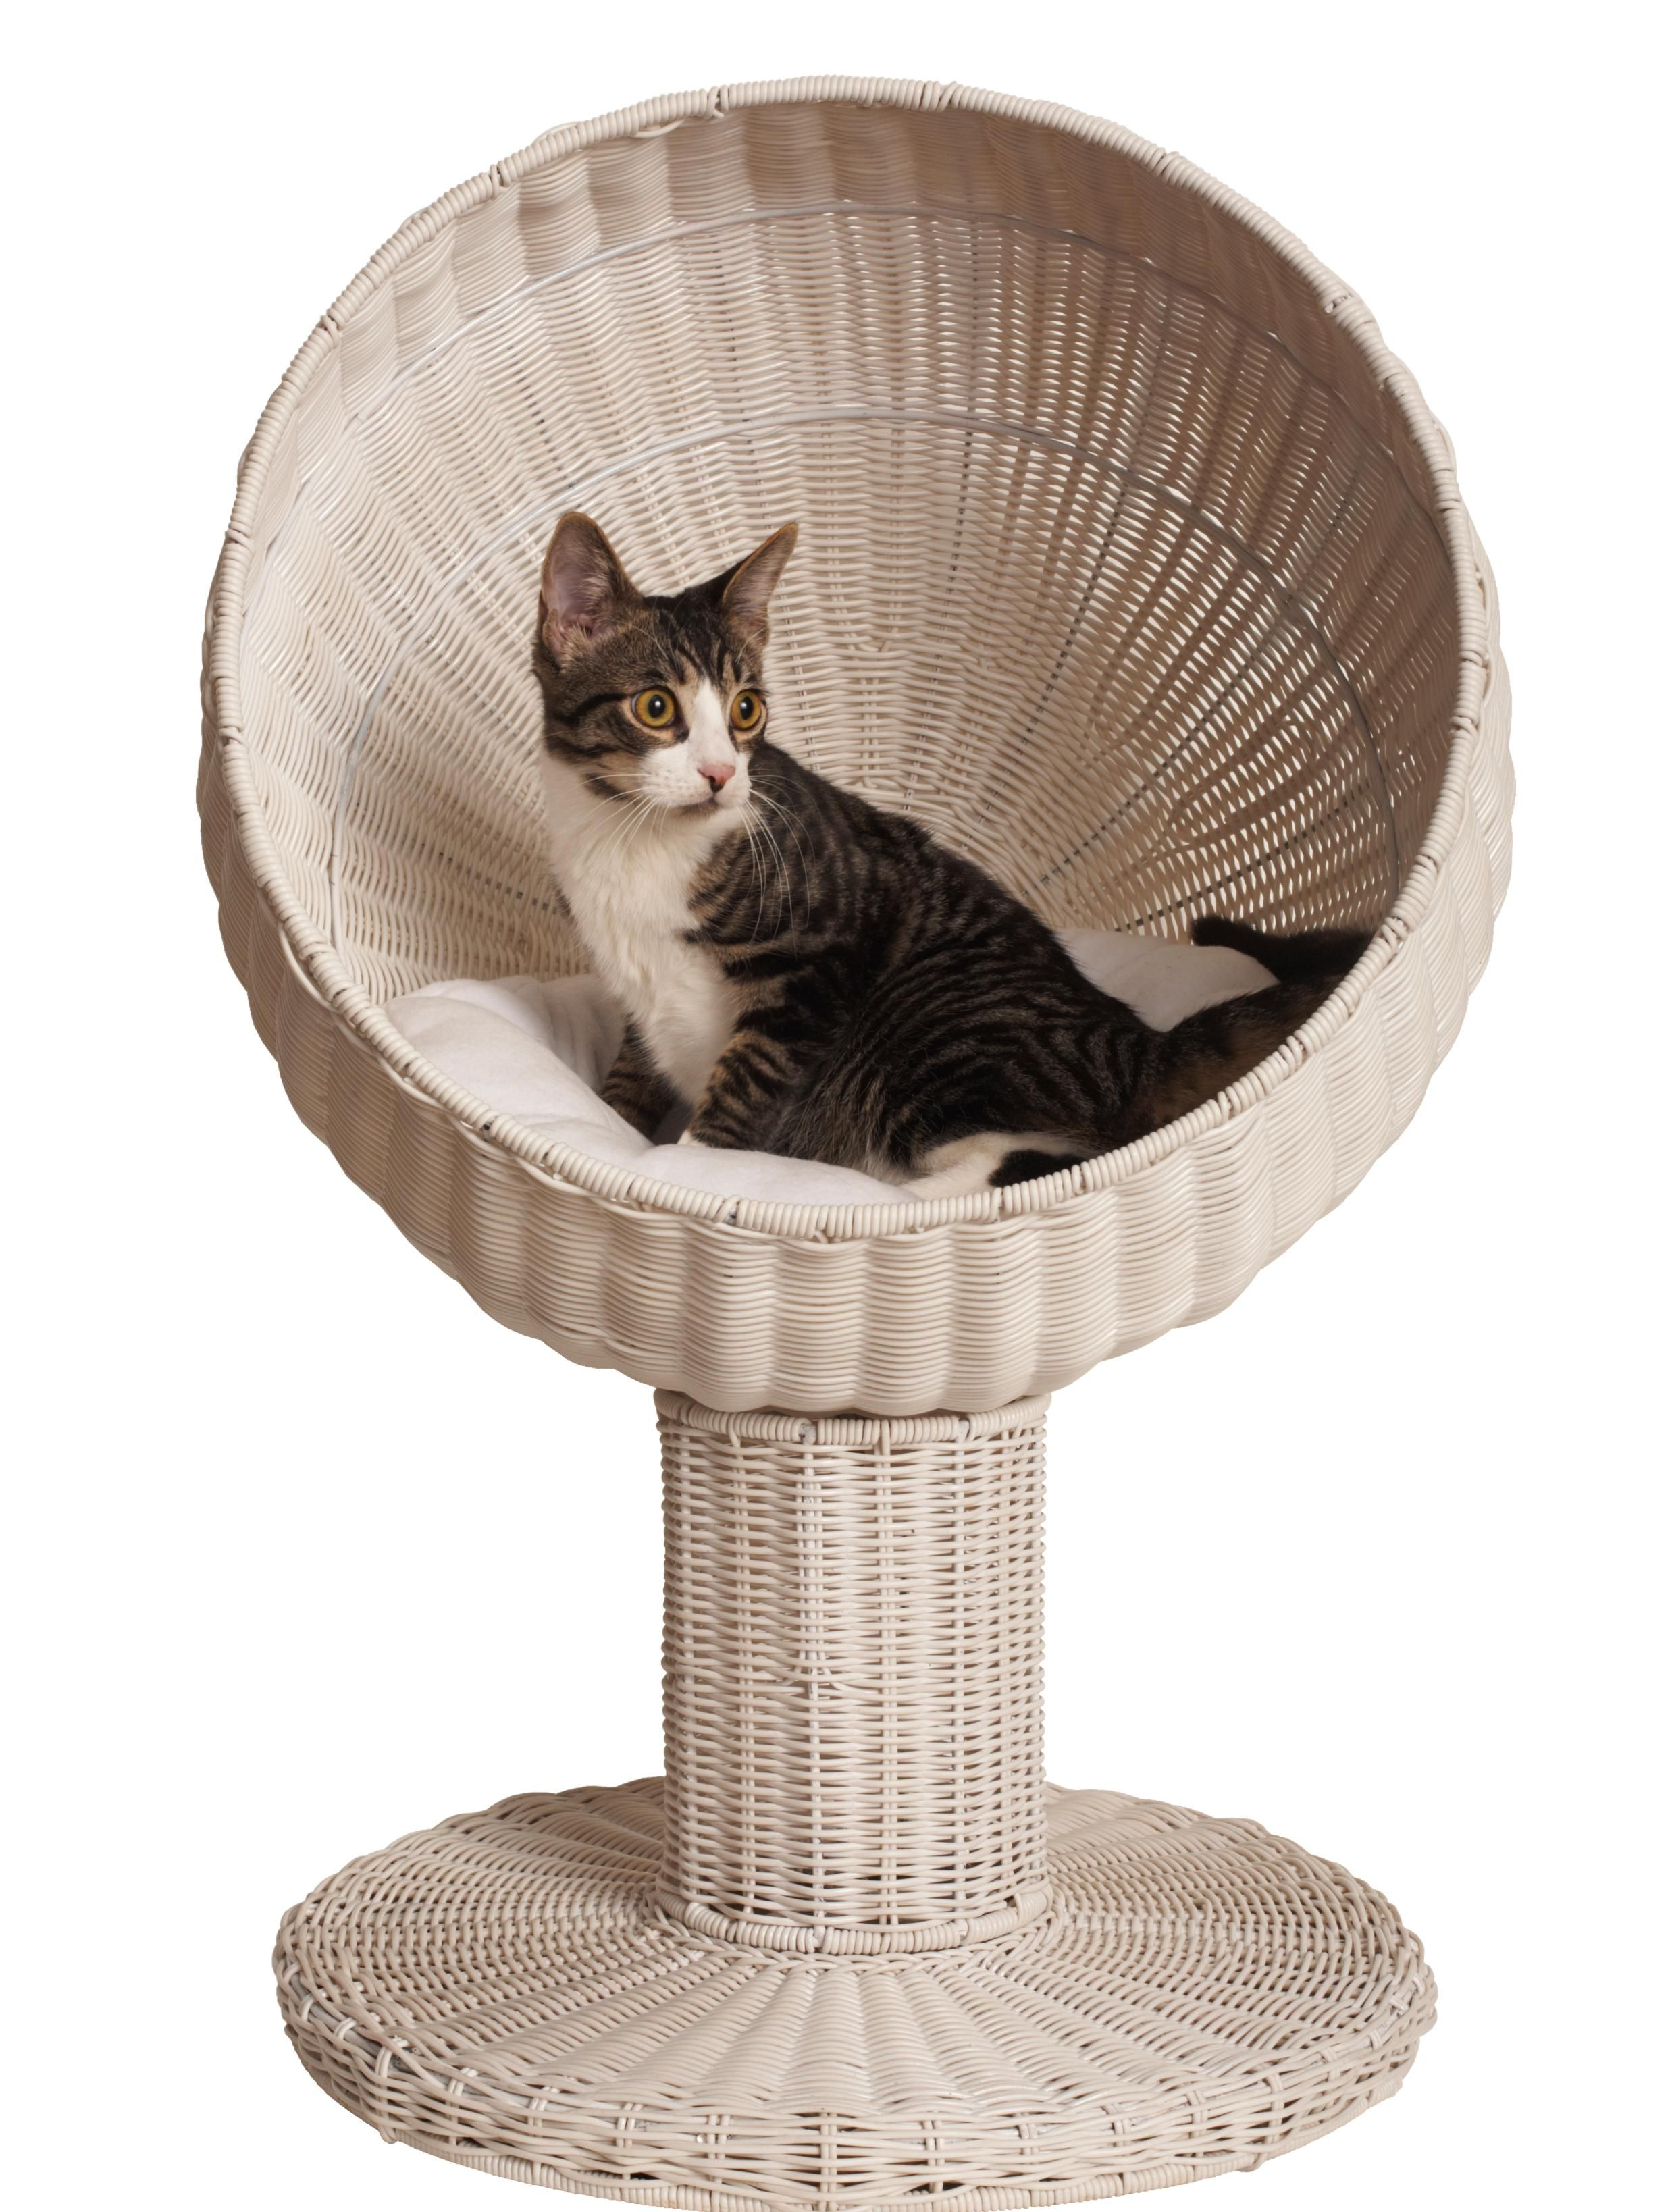 My kitty cats would look cute in one of these Cat bed